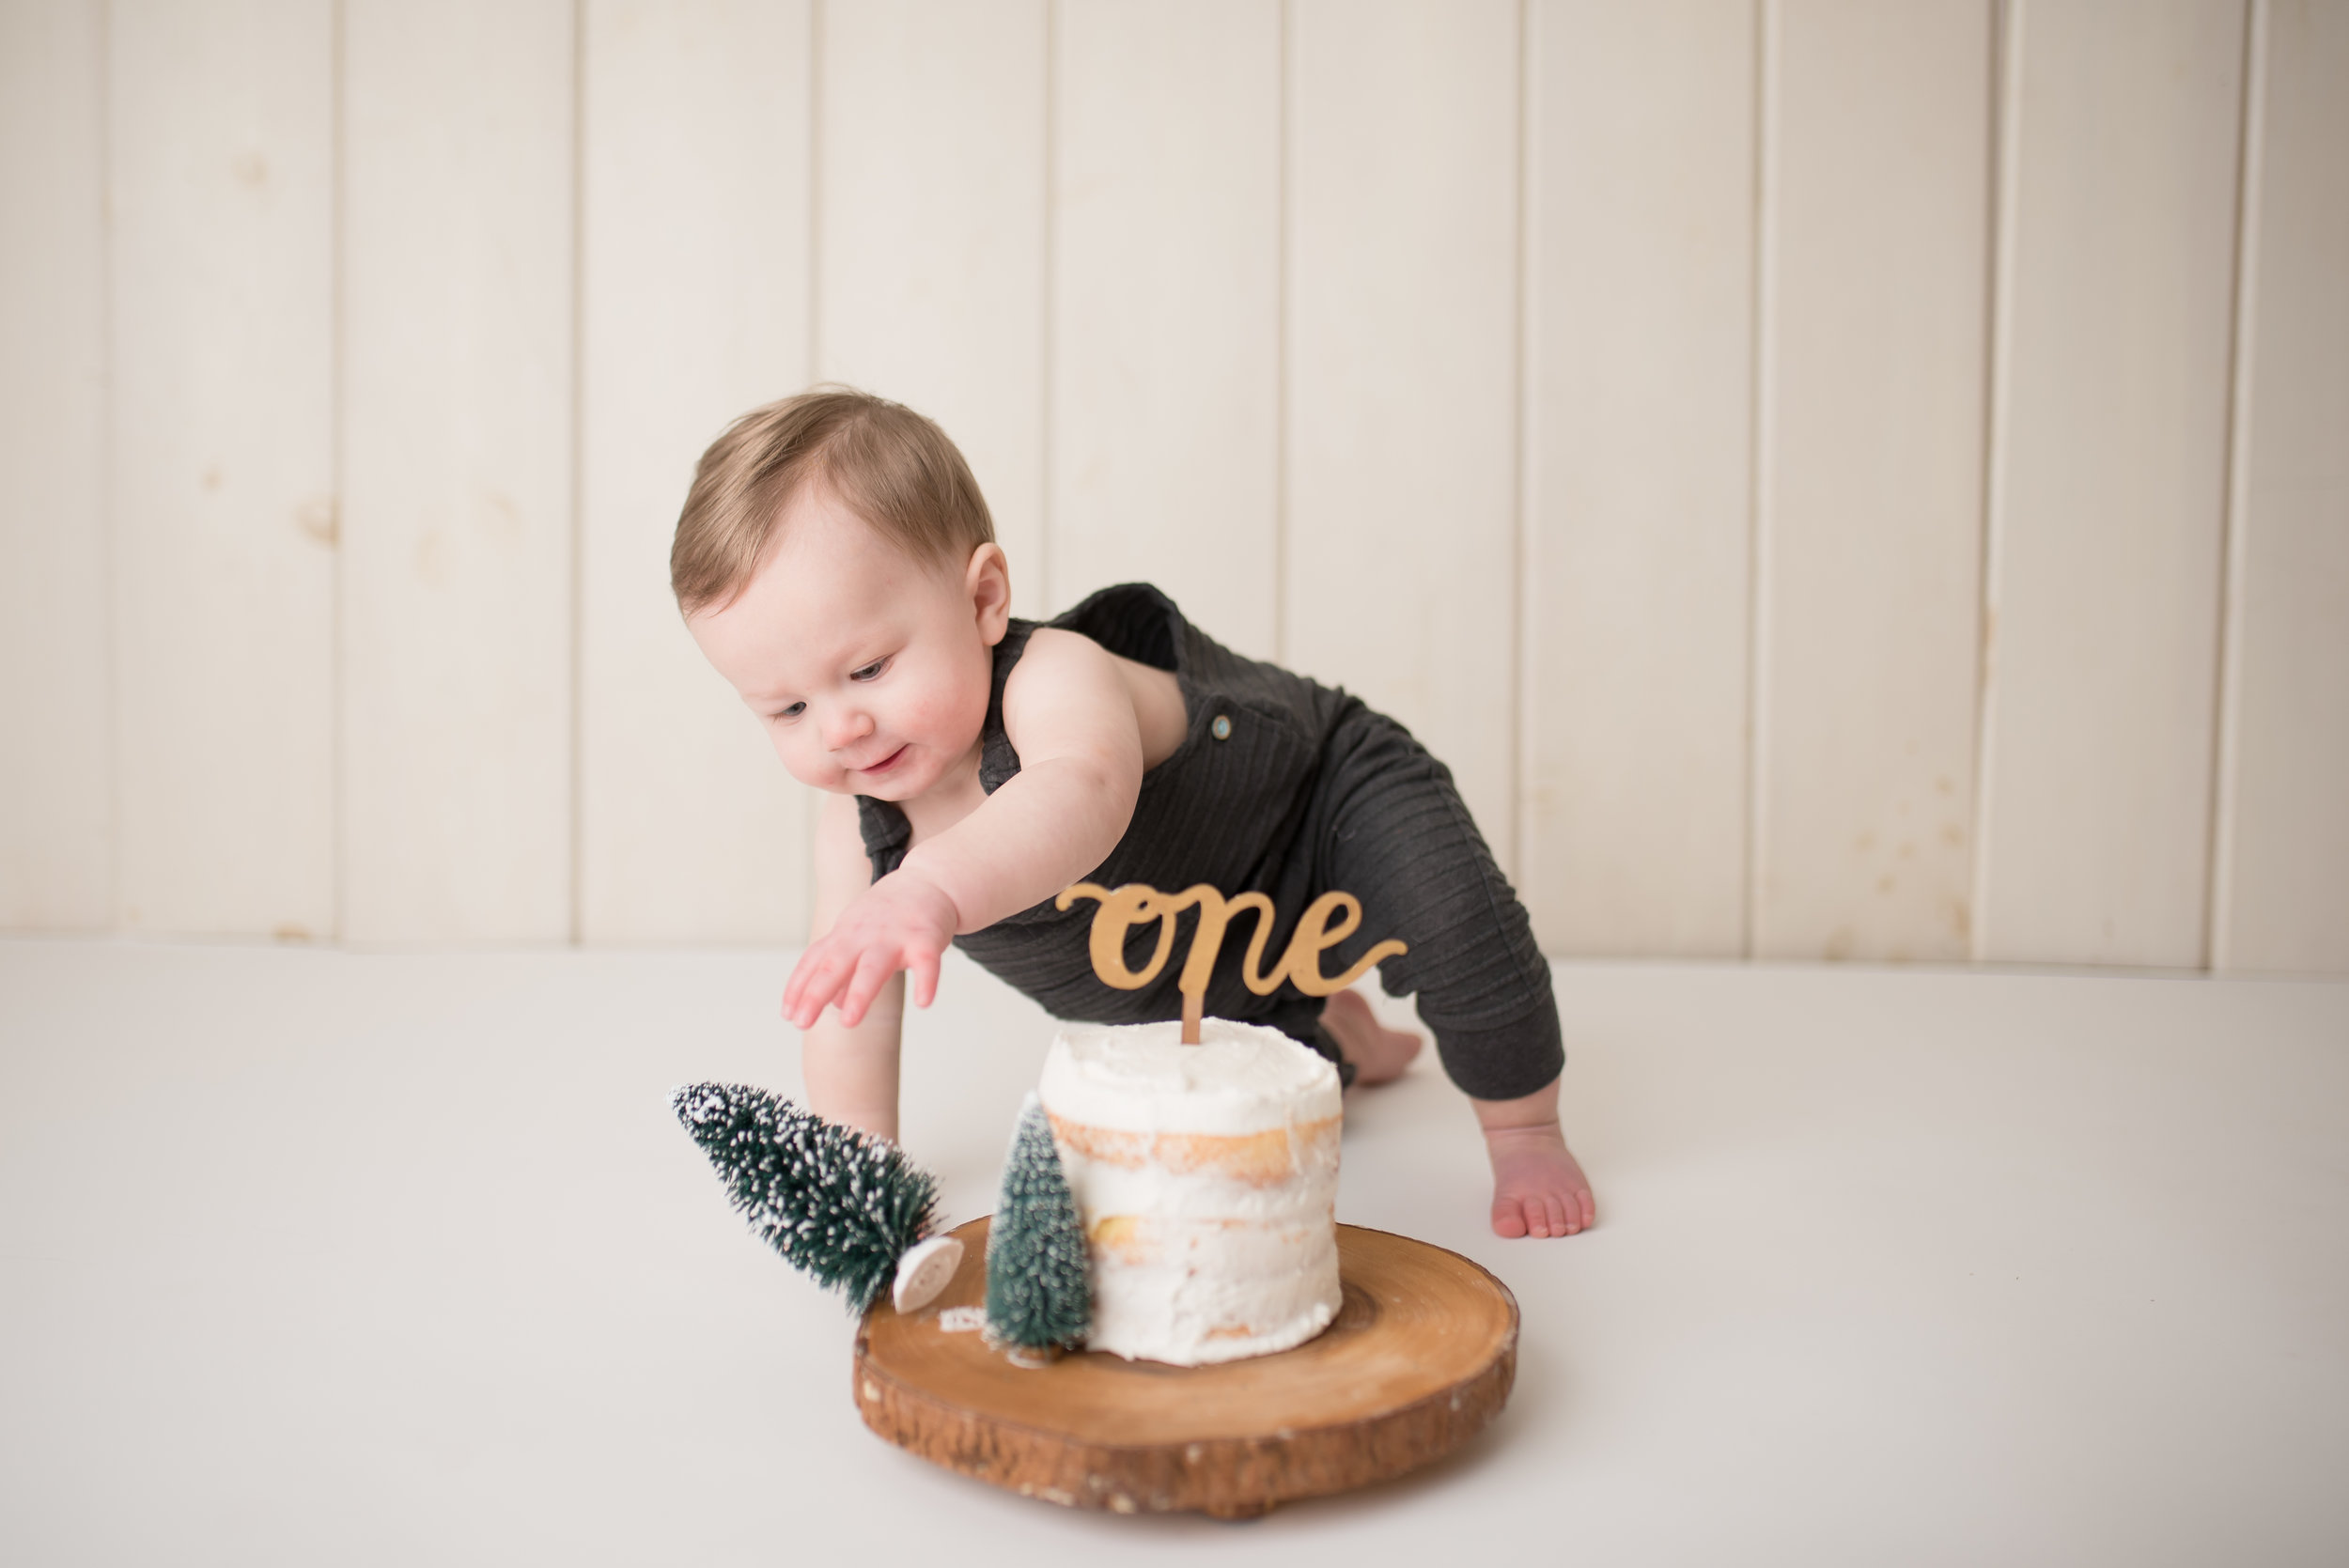 Nicole Starr Photography | Saratoga Springs Cake Smash Photographer | Boston Cake Smash Photographer | Saratoga Springs Family Photographer | Boston Family Photographer  Delmar NY Cake Smash Photographer | Loudonville NY Cake Smash Photographer